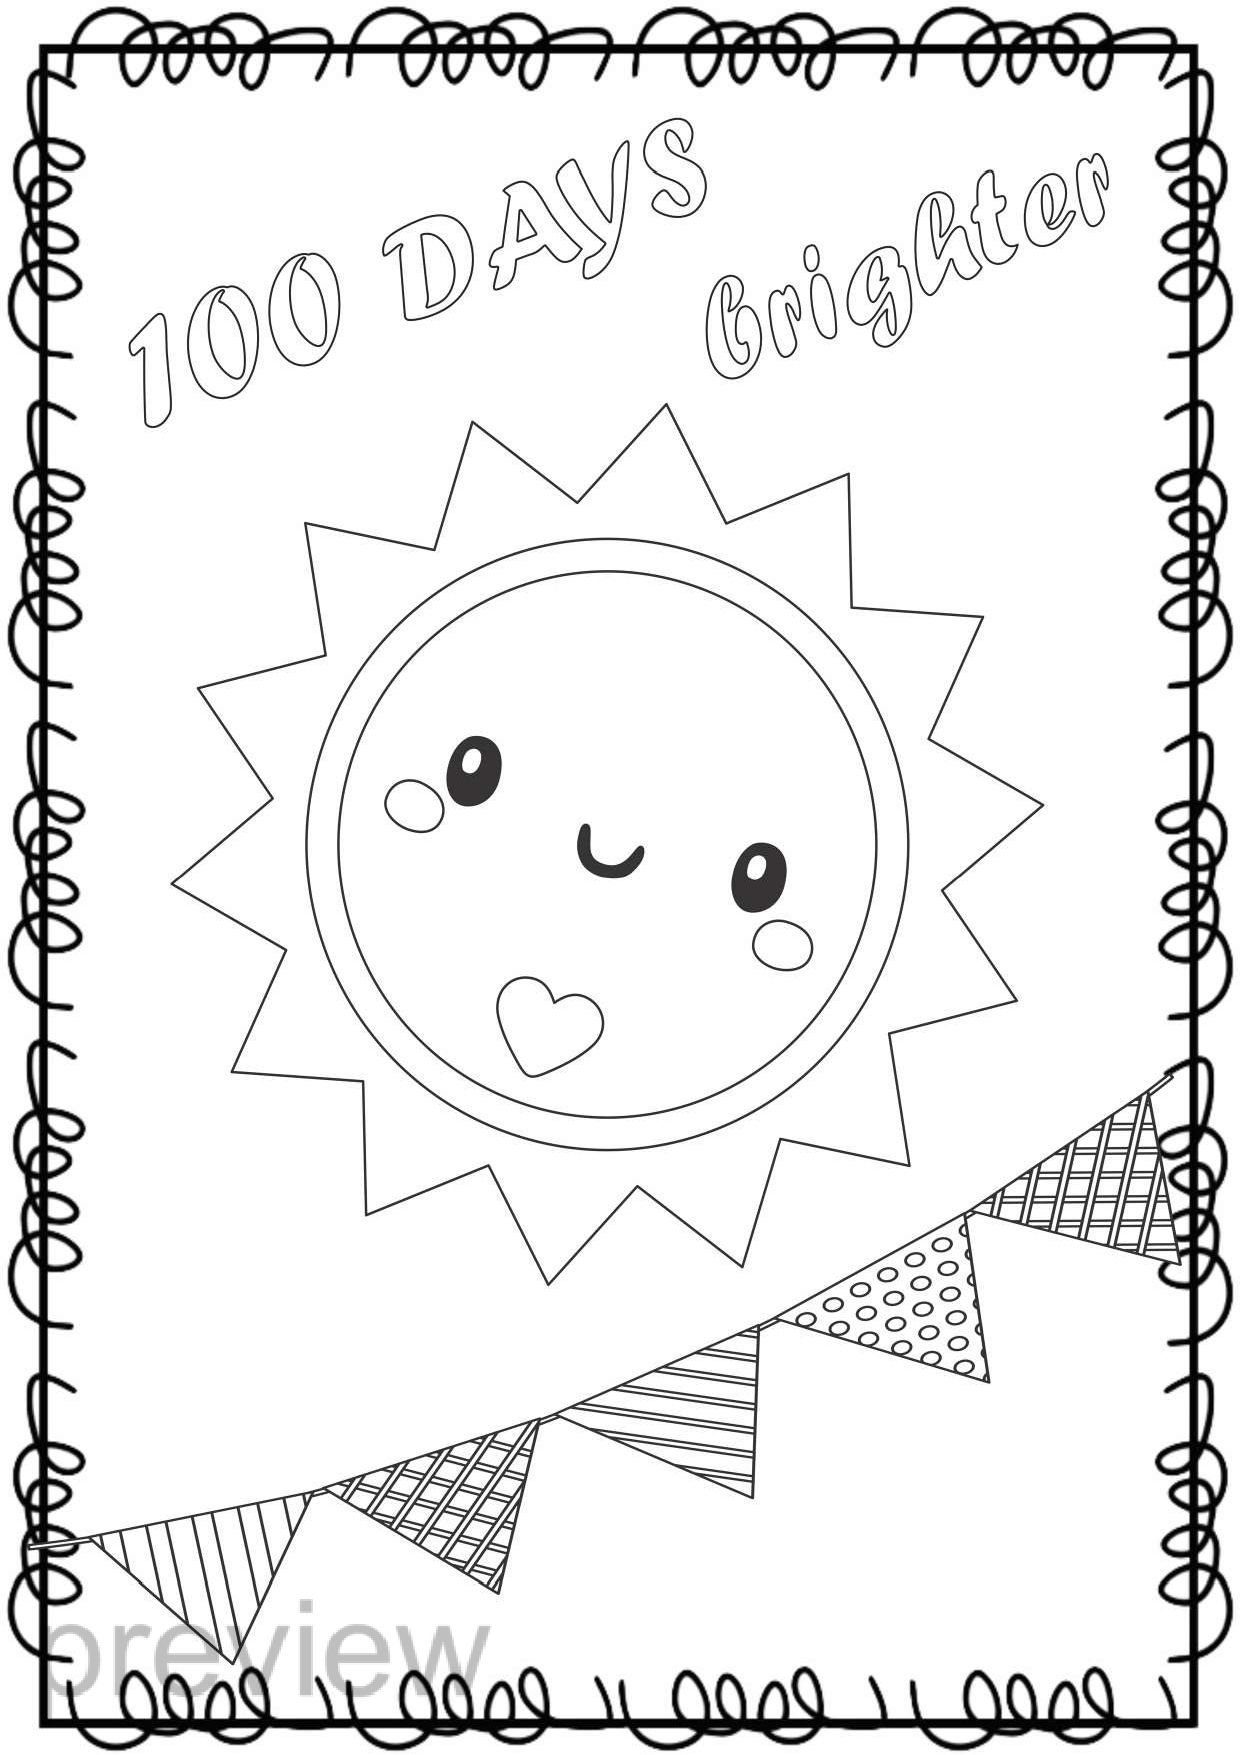 School theme coloring pages | 1755x1240